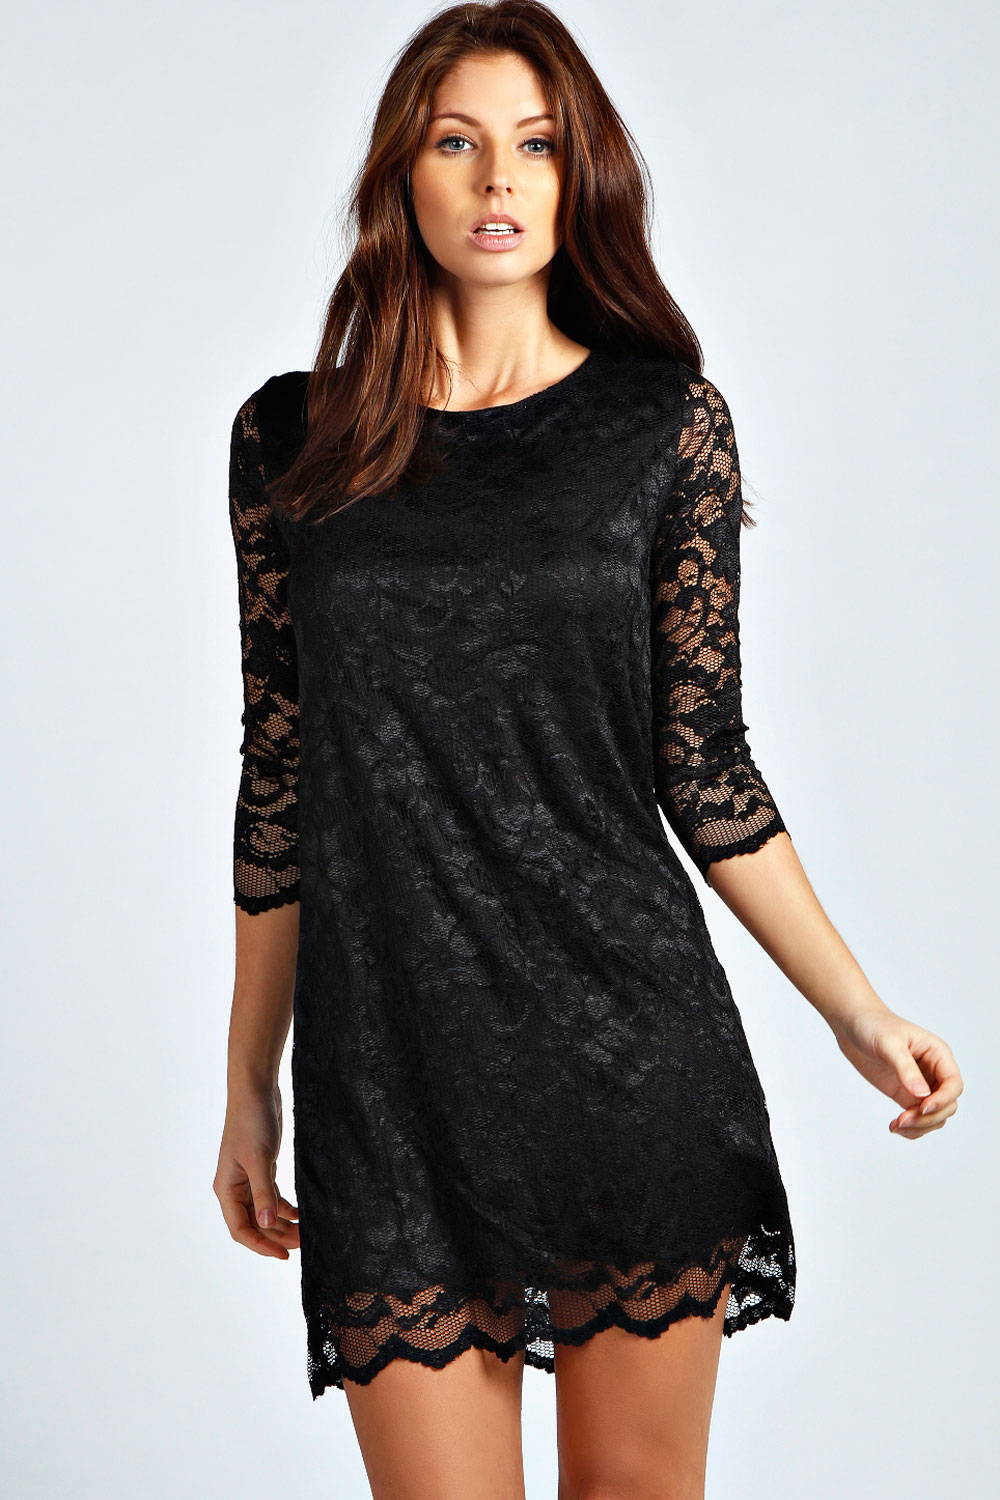 Boohoo-Womens-Ladies-Hayley-Crew-Neck-Lace-3-4-Sleeve-Shift-Dress